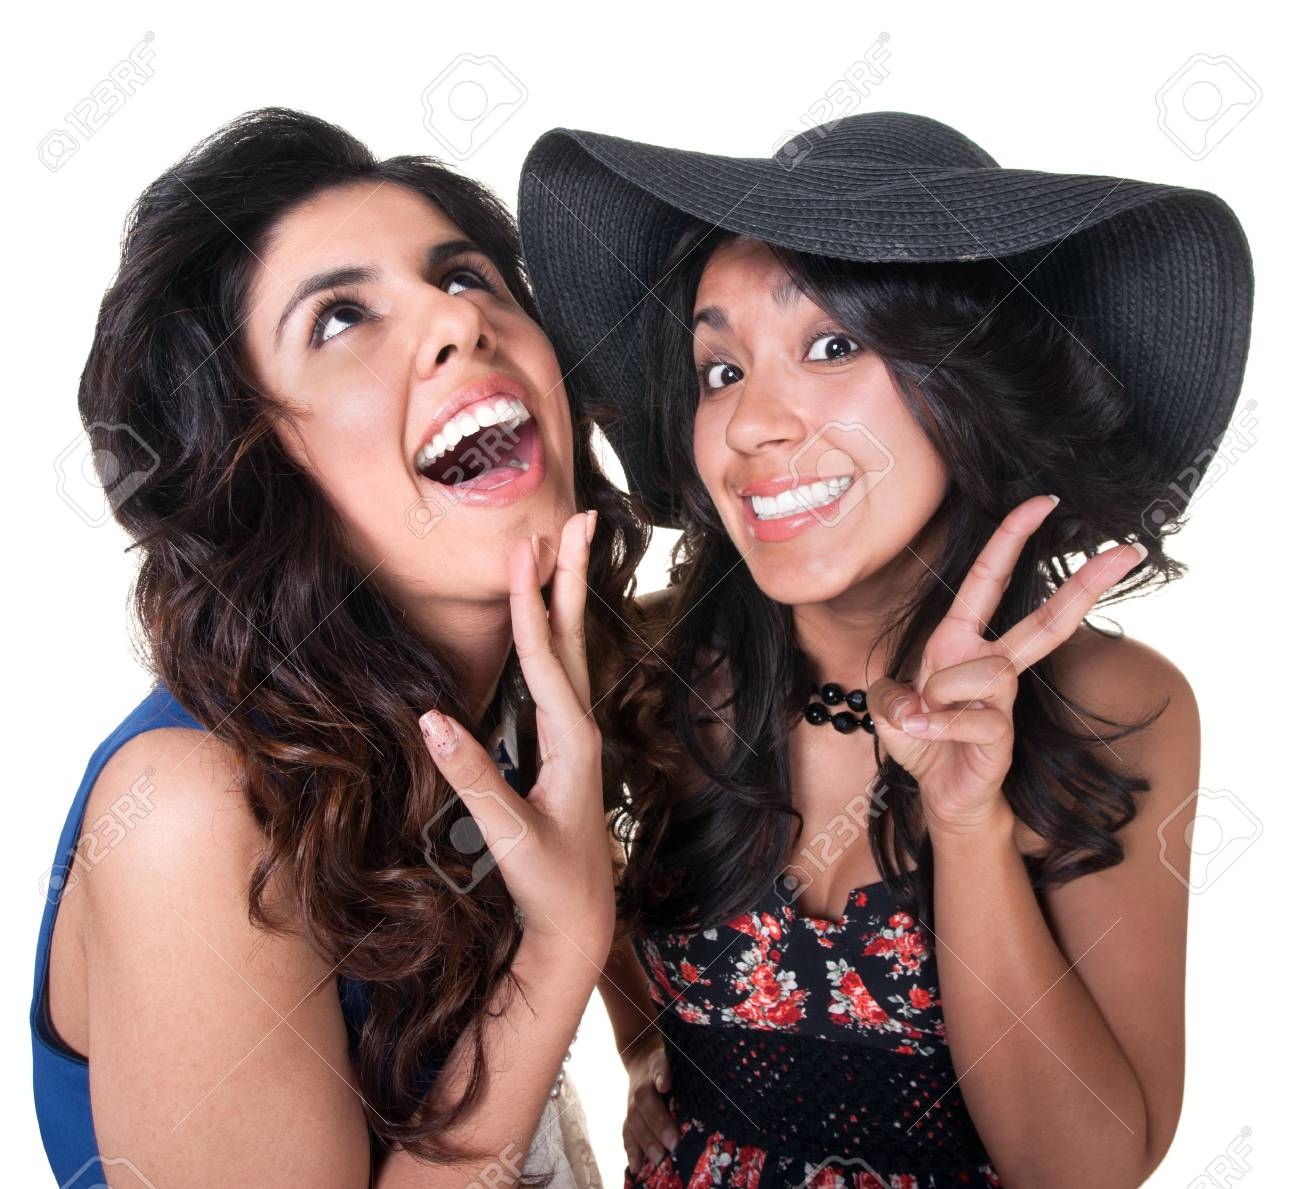 Giggling female friends on isolated background Stock Photo - 17991533